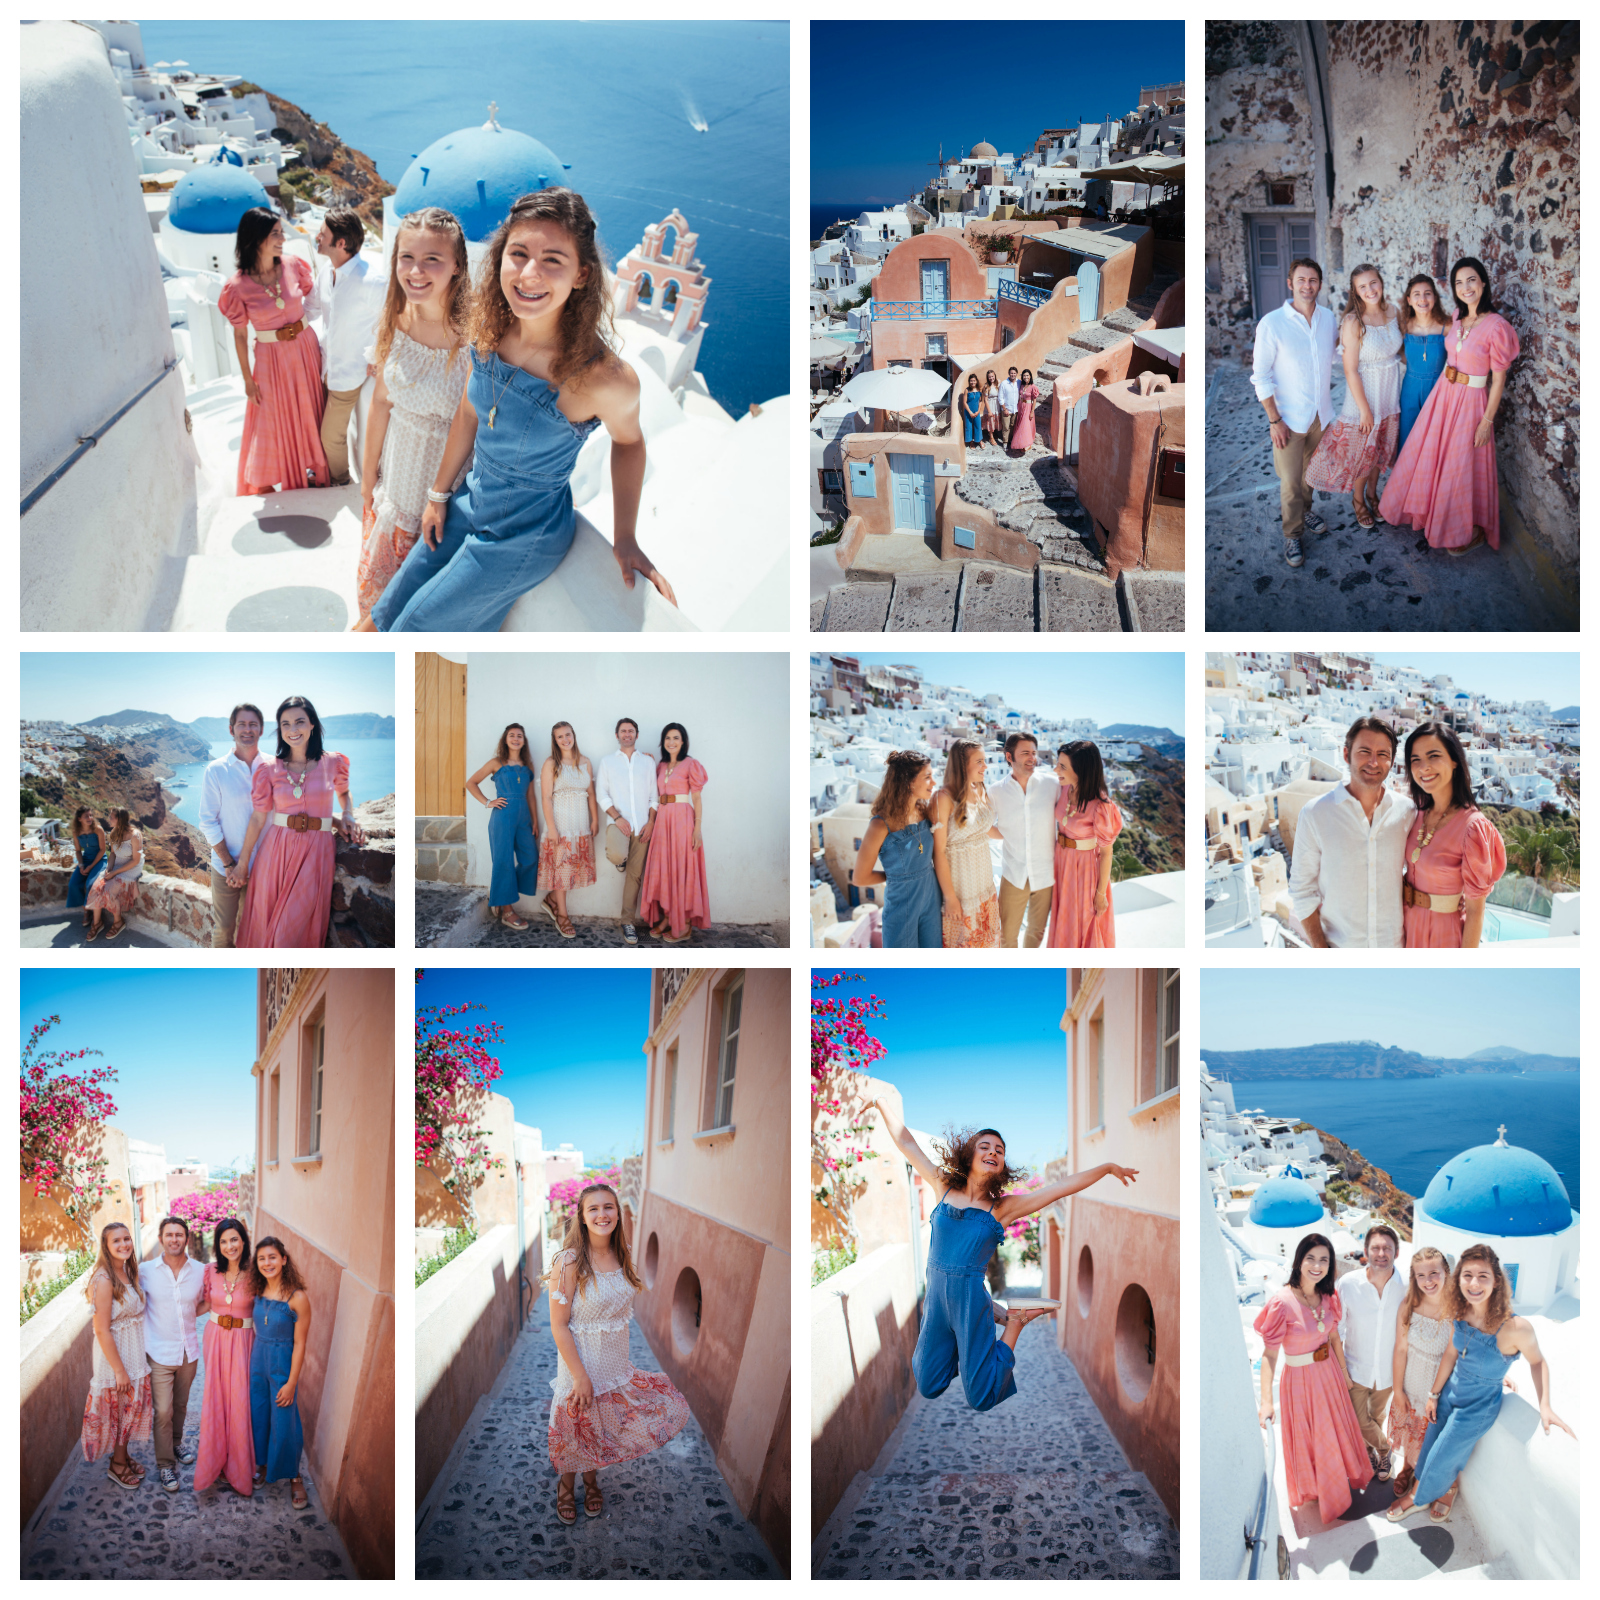 Professional Family Vacation Pictures on 100 Days of Real Food